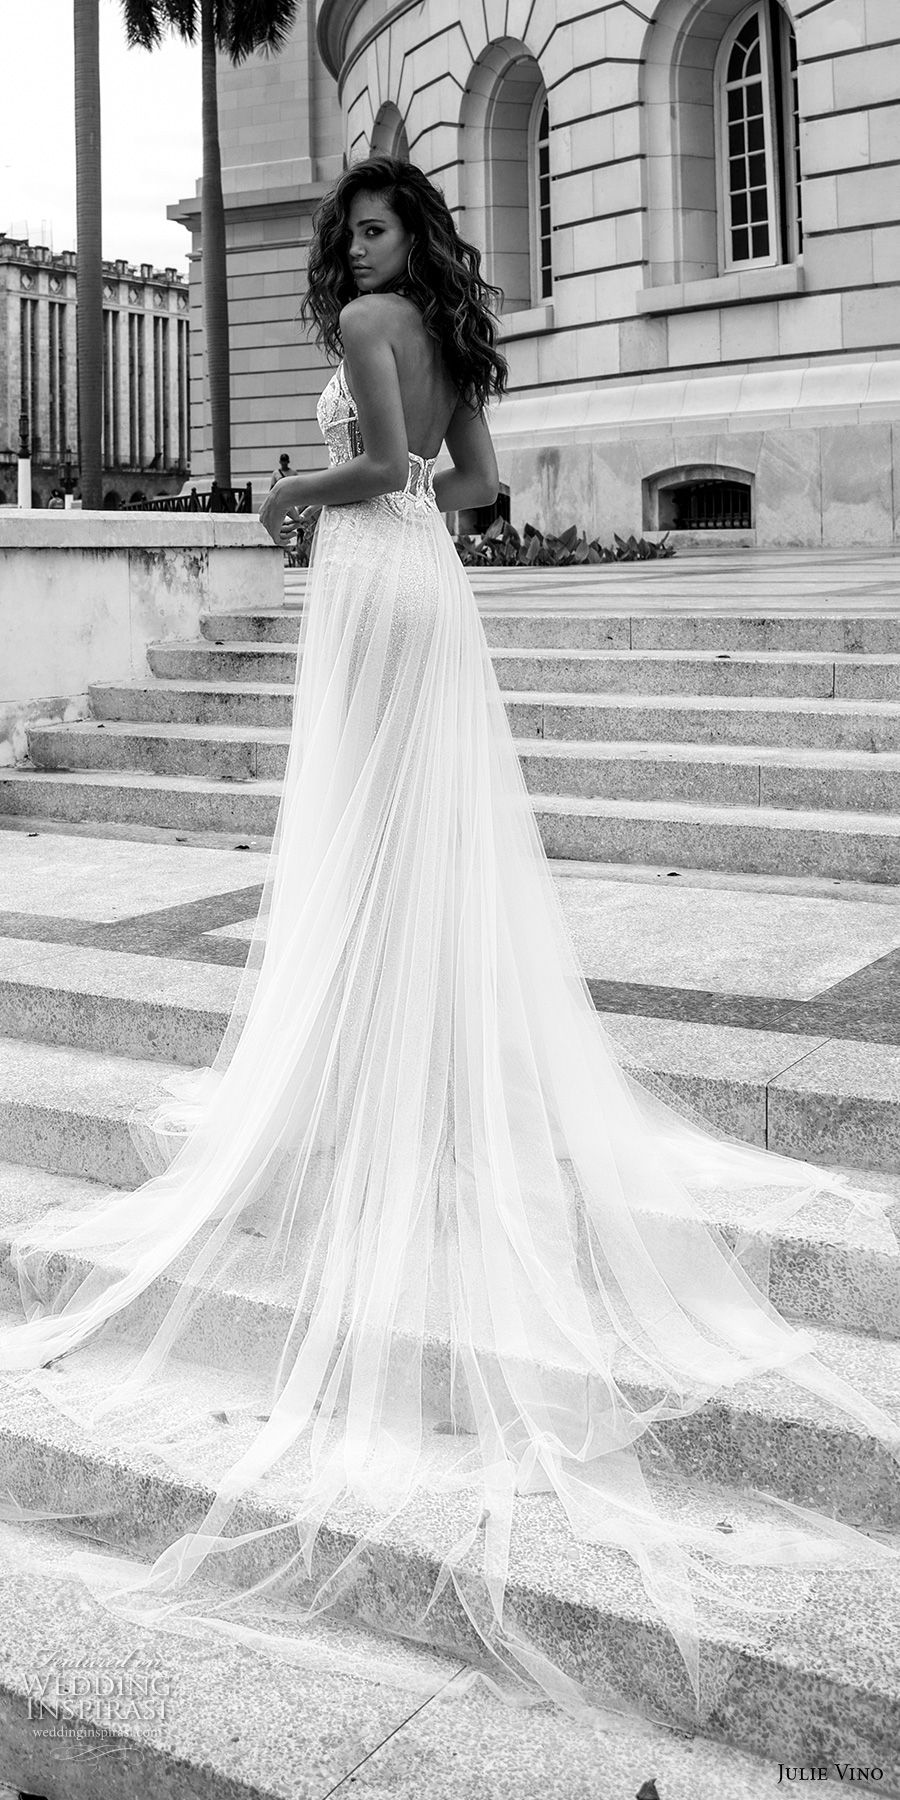 Julie Vino Herbst 2018 Brautkleider | My wedding | Pinterest ...